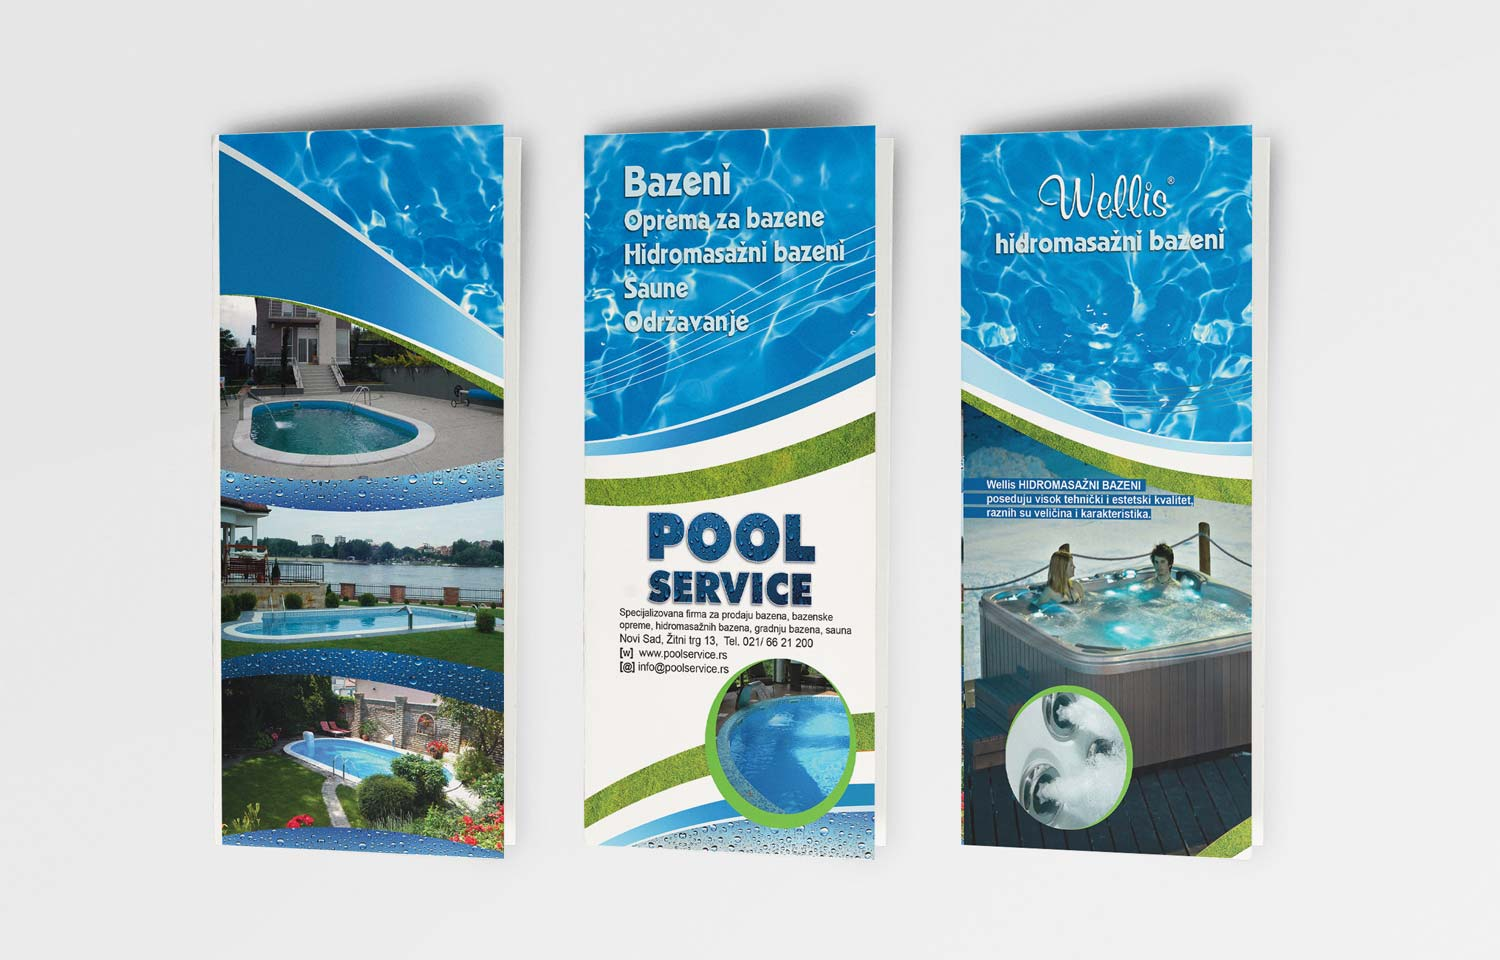 poolservice1